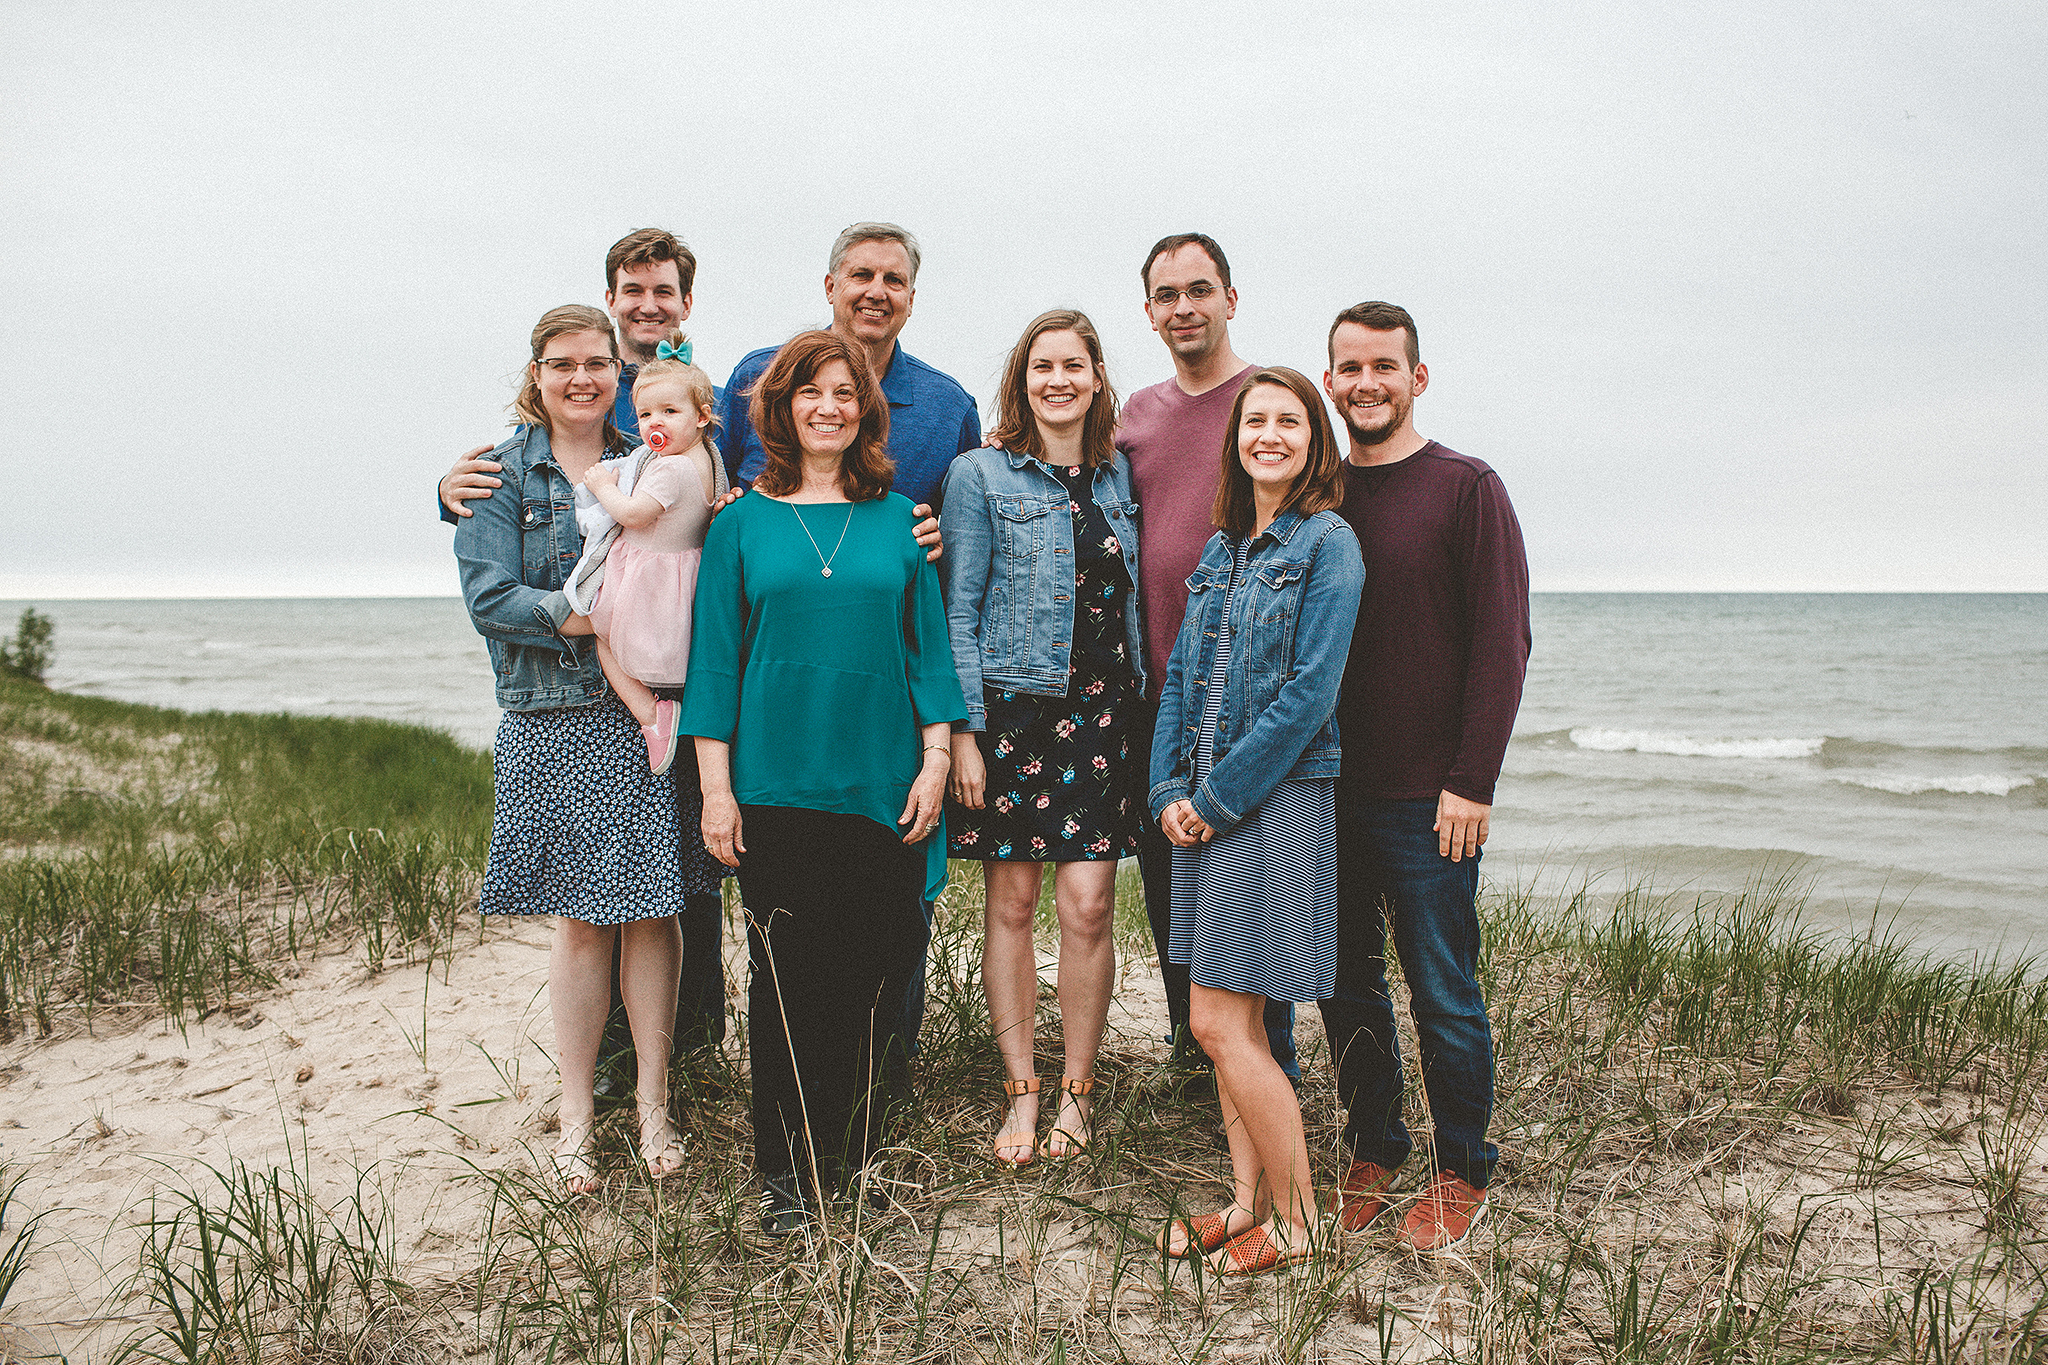 Extended family pictures on the beach | Sheboygan, WI Family Photographer | by Chrissy Deming Photography